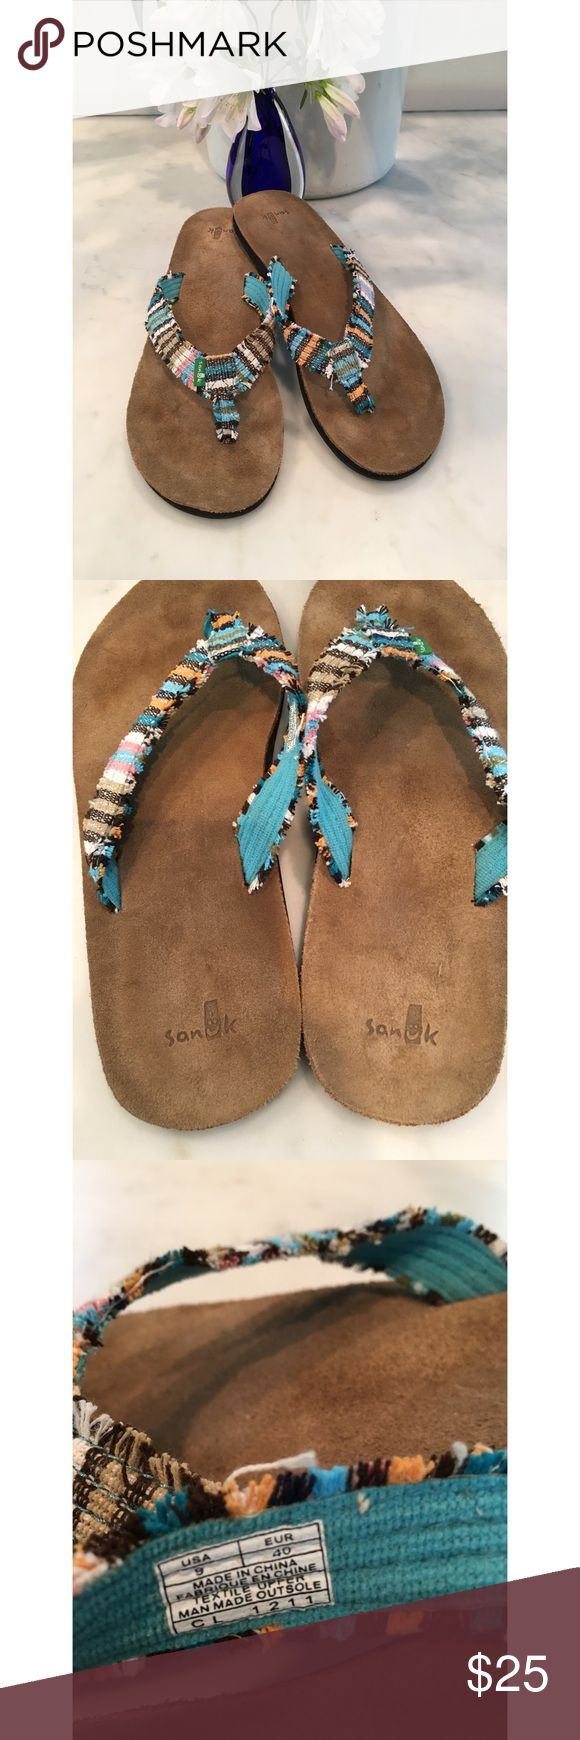 🌴Sanuk Flip Flops Multi Color Textile🌴 Great pair of Sanuk multi color flip flops with a leather footbed. Worn a couple of times at most. Please look at photos. Always from a smoke free home😊 Sanuk Shoes Sandals